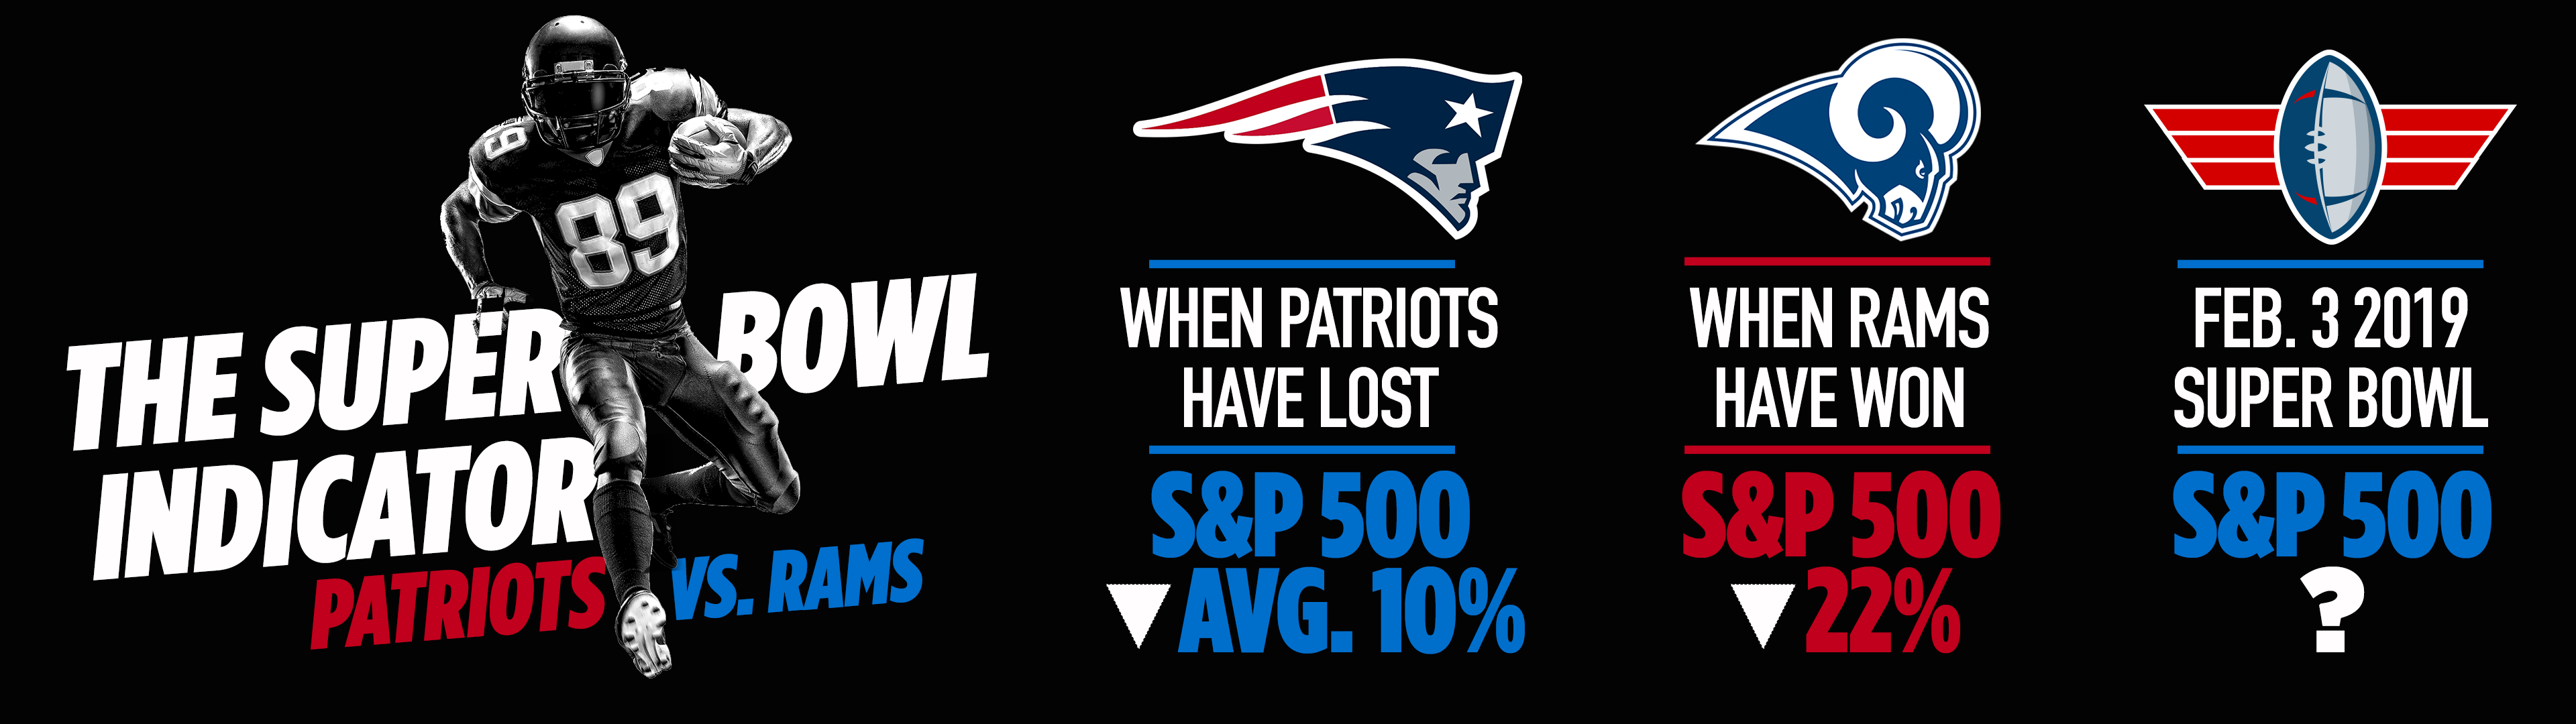 Wall Street might want to root for Tom Brady and the Patriots at the Super Bowl